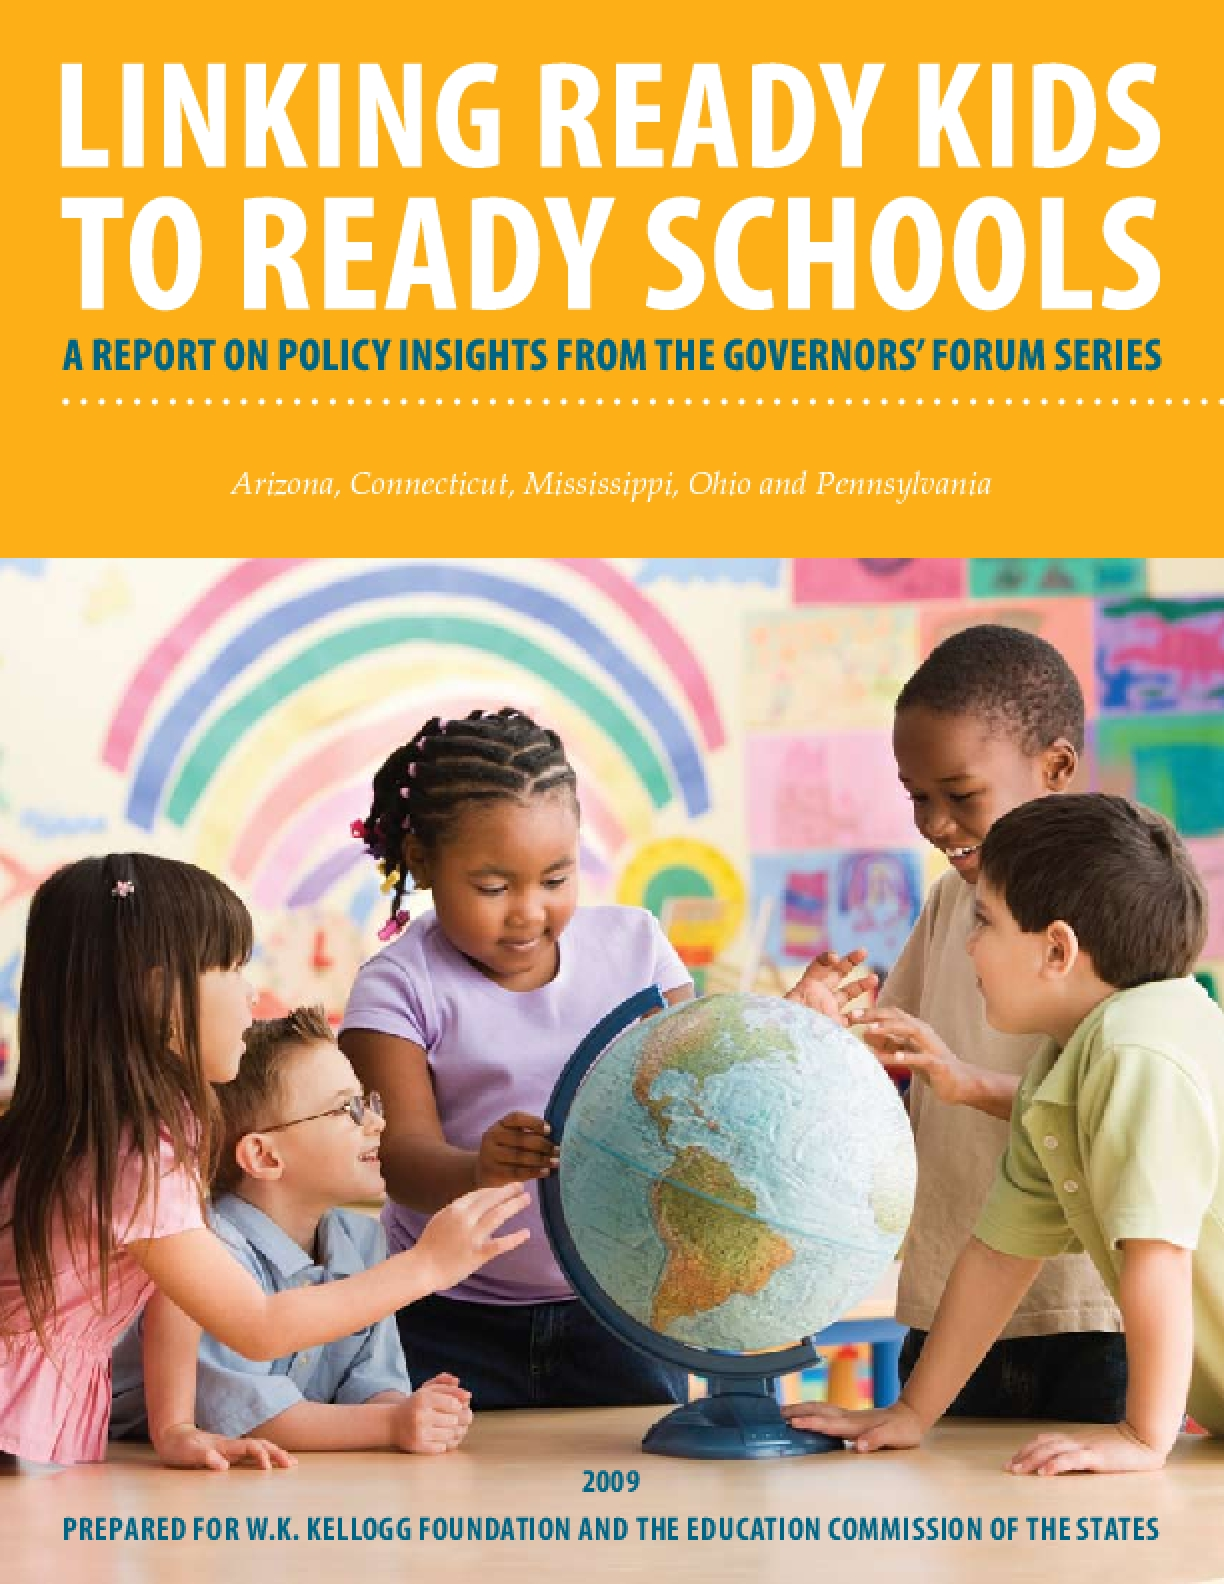 SPARK Linking Ready Kids to Ready Schools: A Report on Policy Insights from the Governors' Forum Series